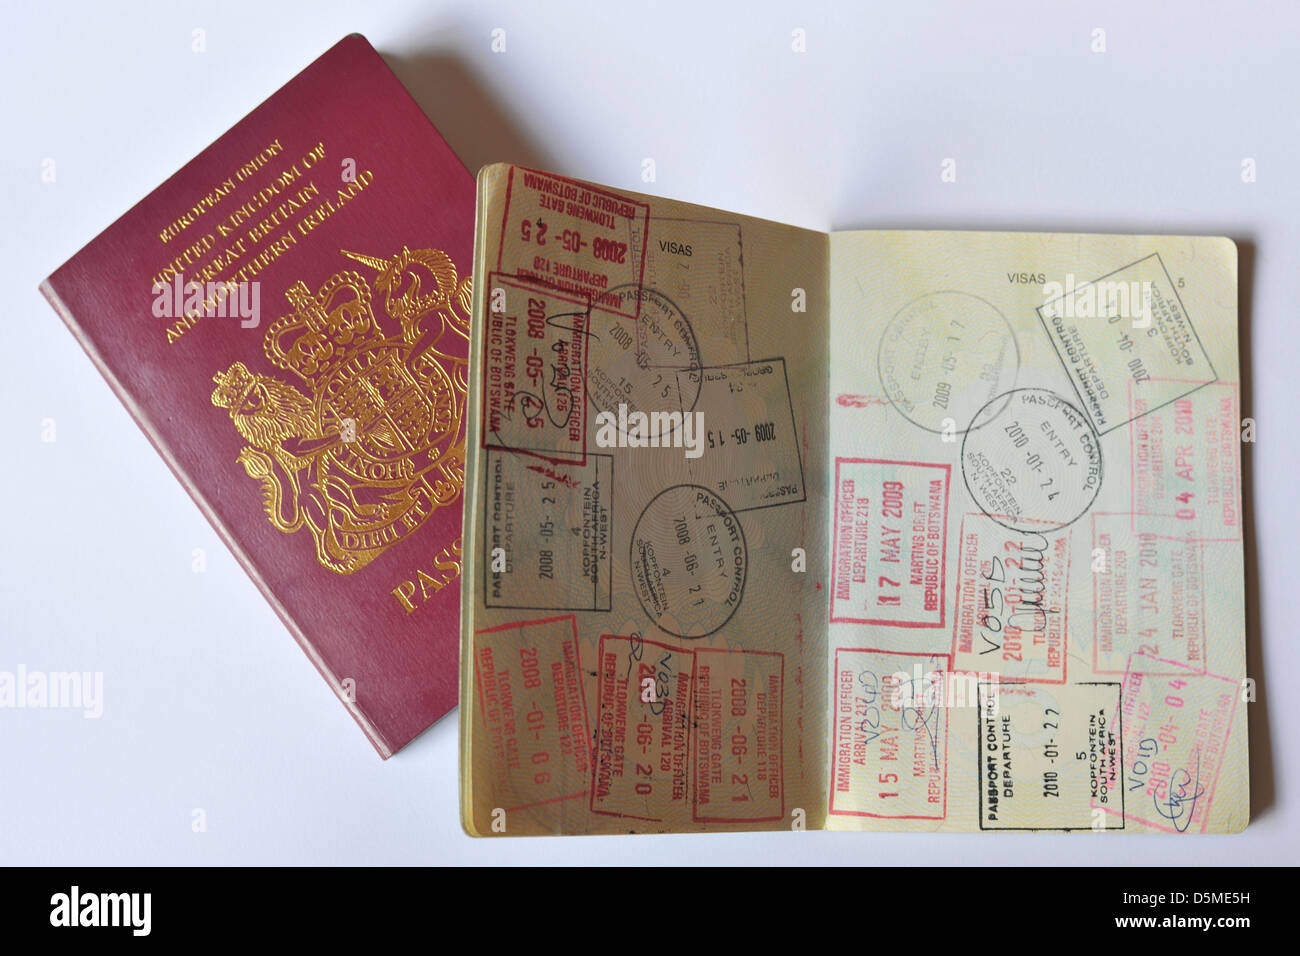 The front cover of a British Passport and a fully stamped Visa page. - Stock Image